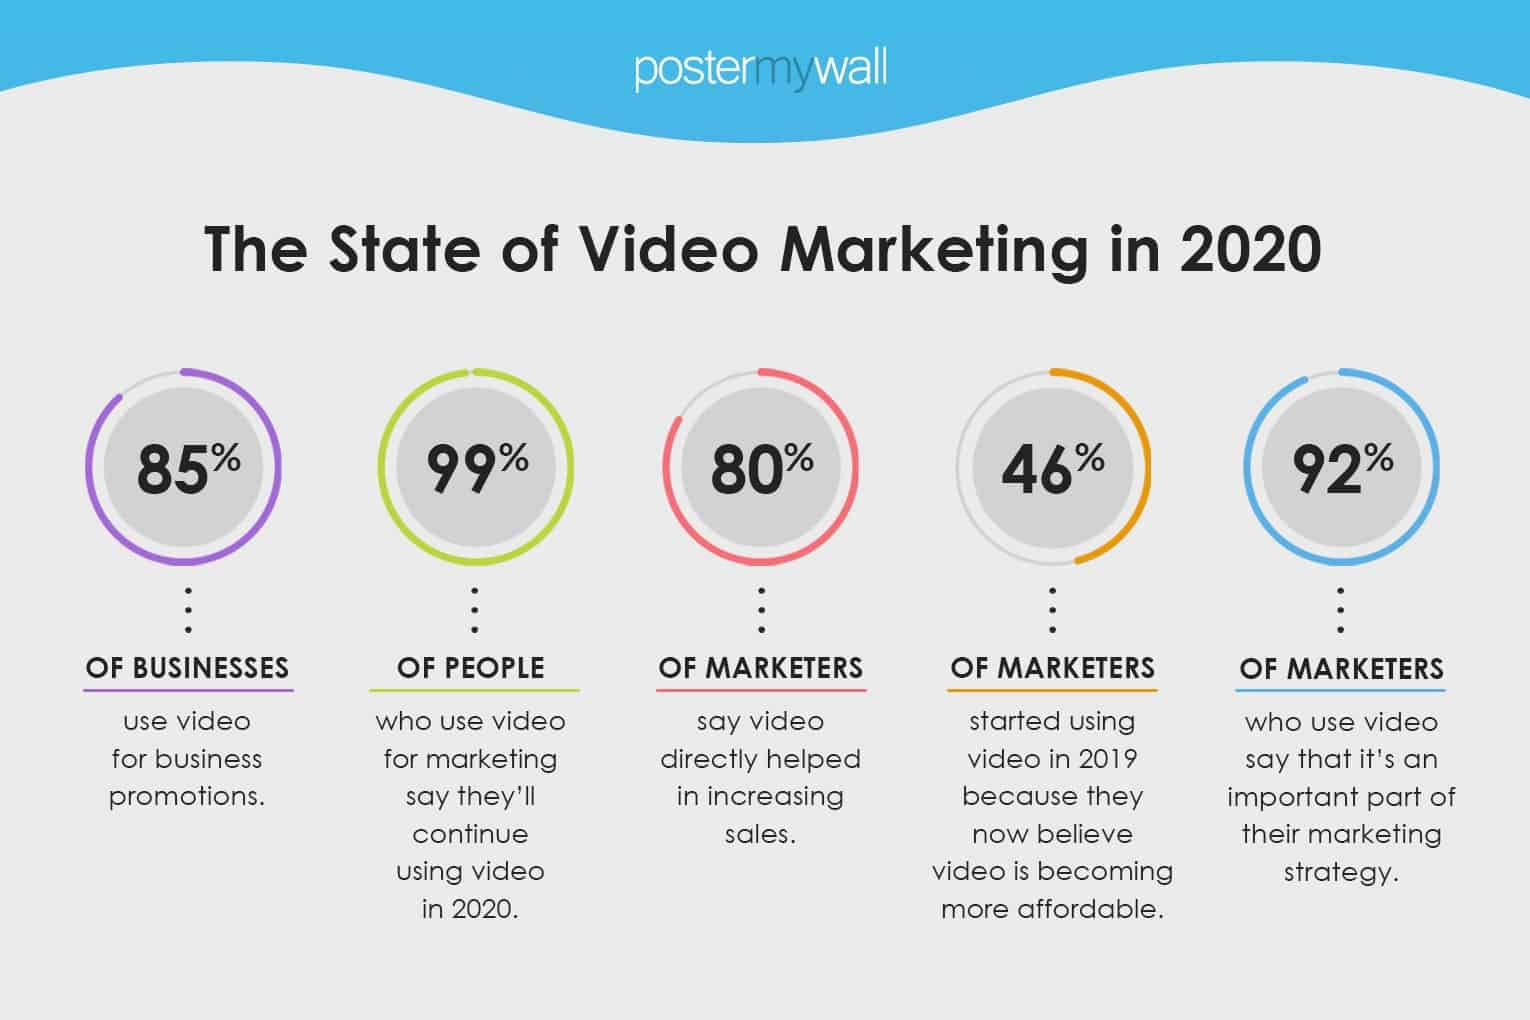 the state of video marketing in 2020